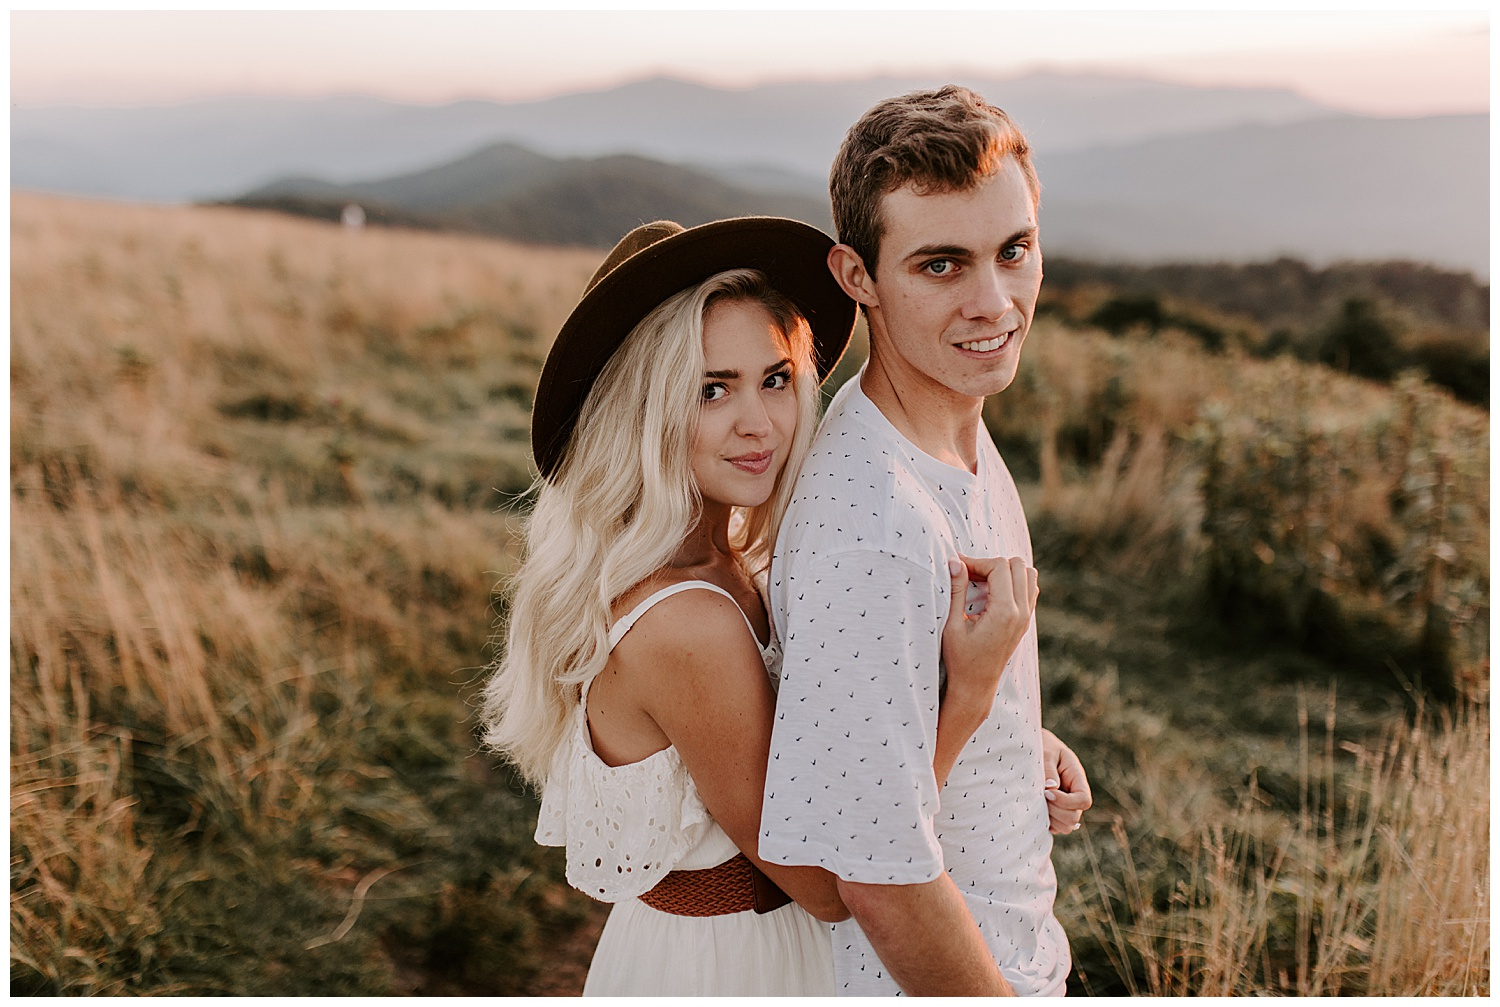 HANNAH_NICK_MAXPATCH_ENGAGEMENT2019-09-05_0034.jpg